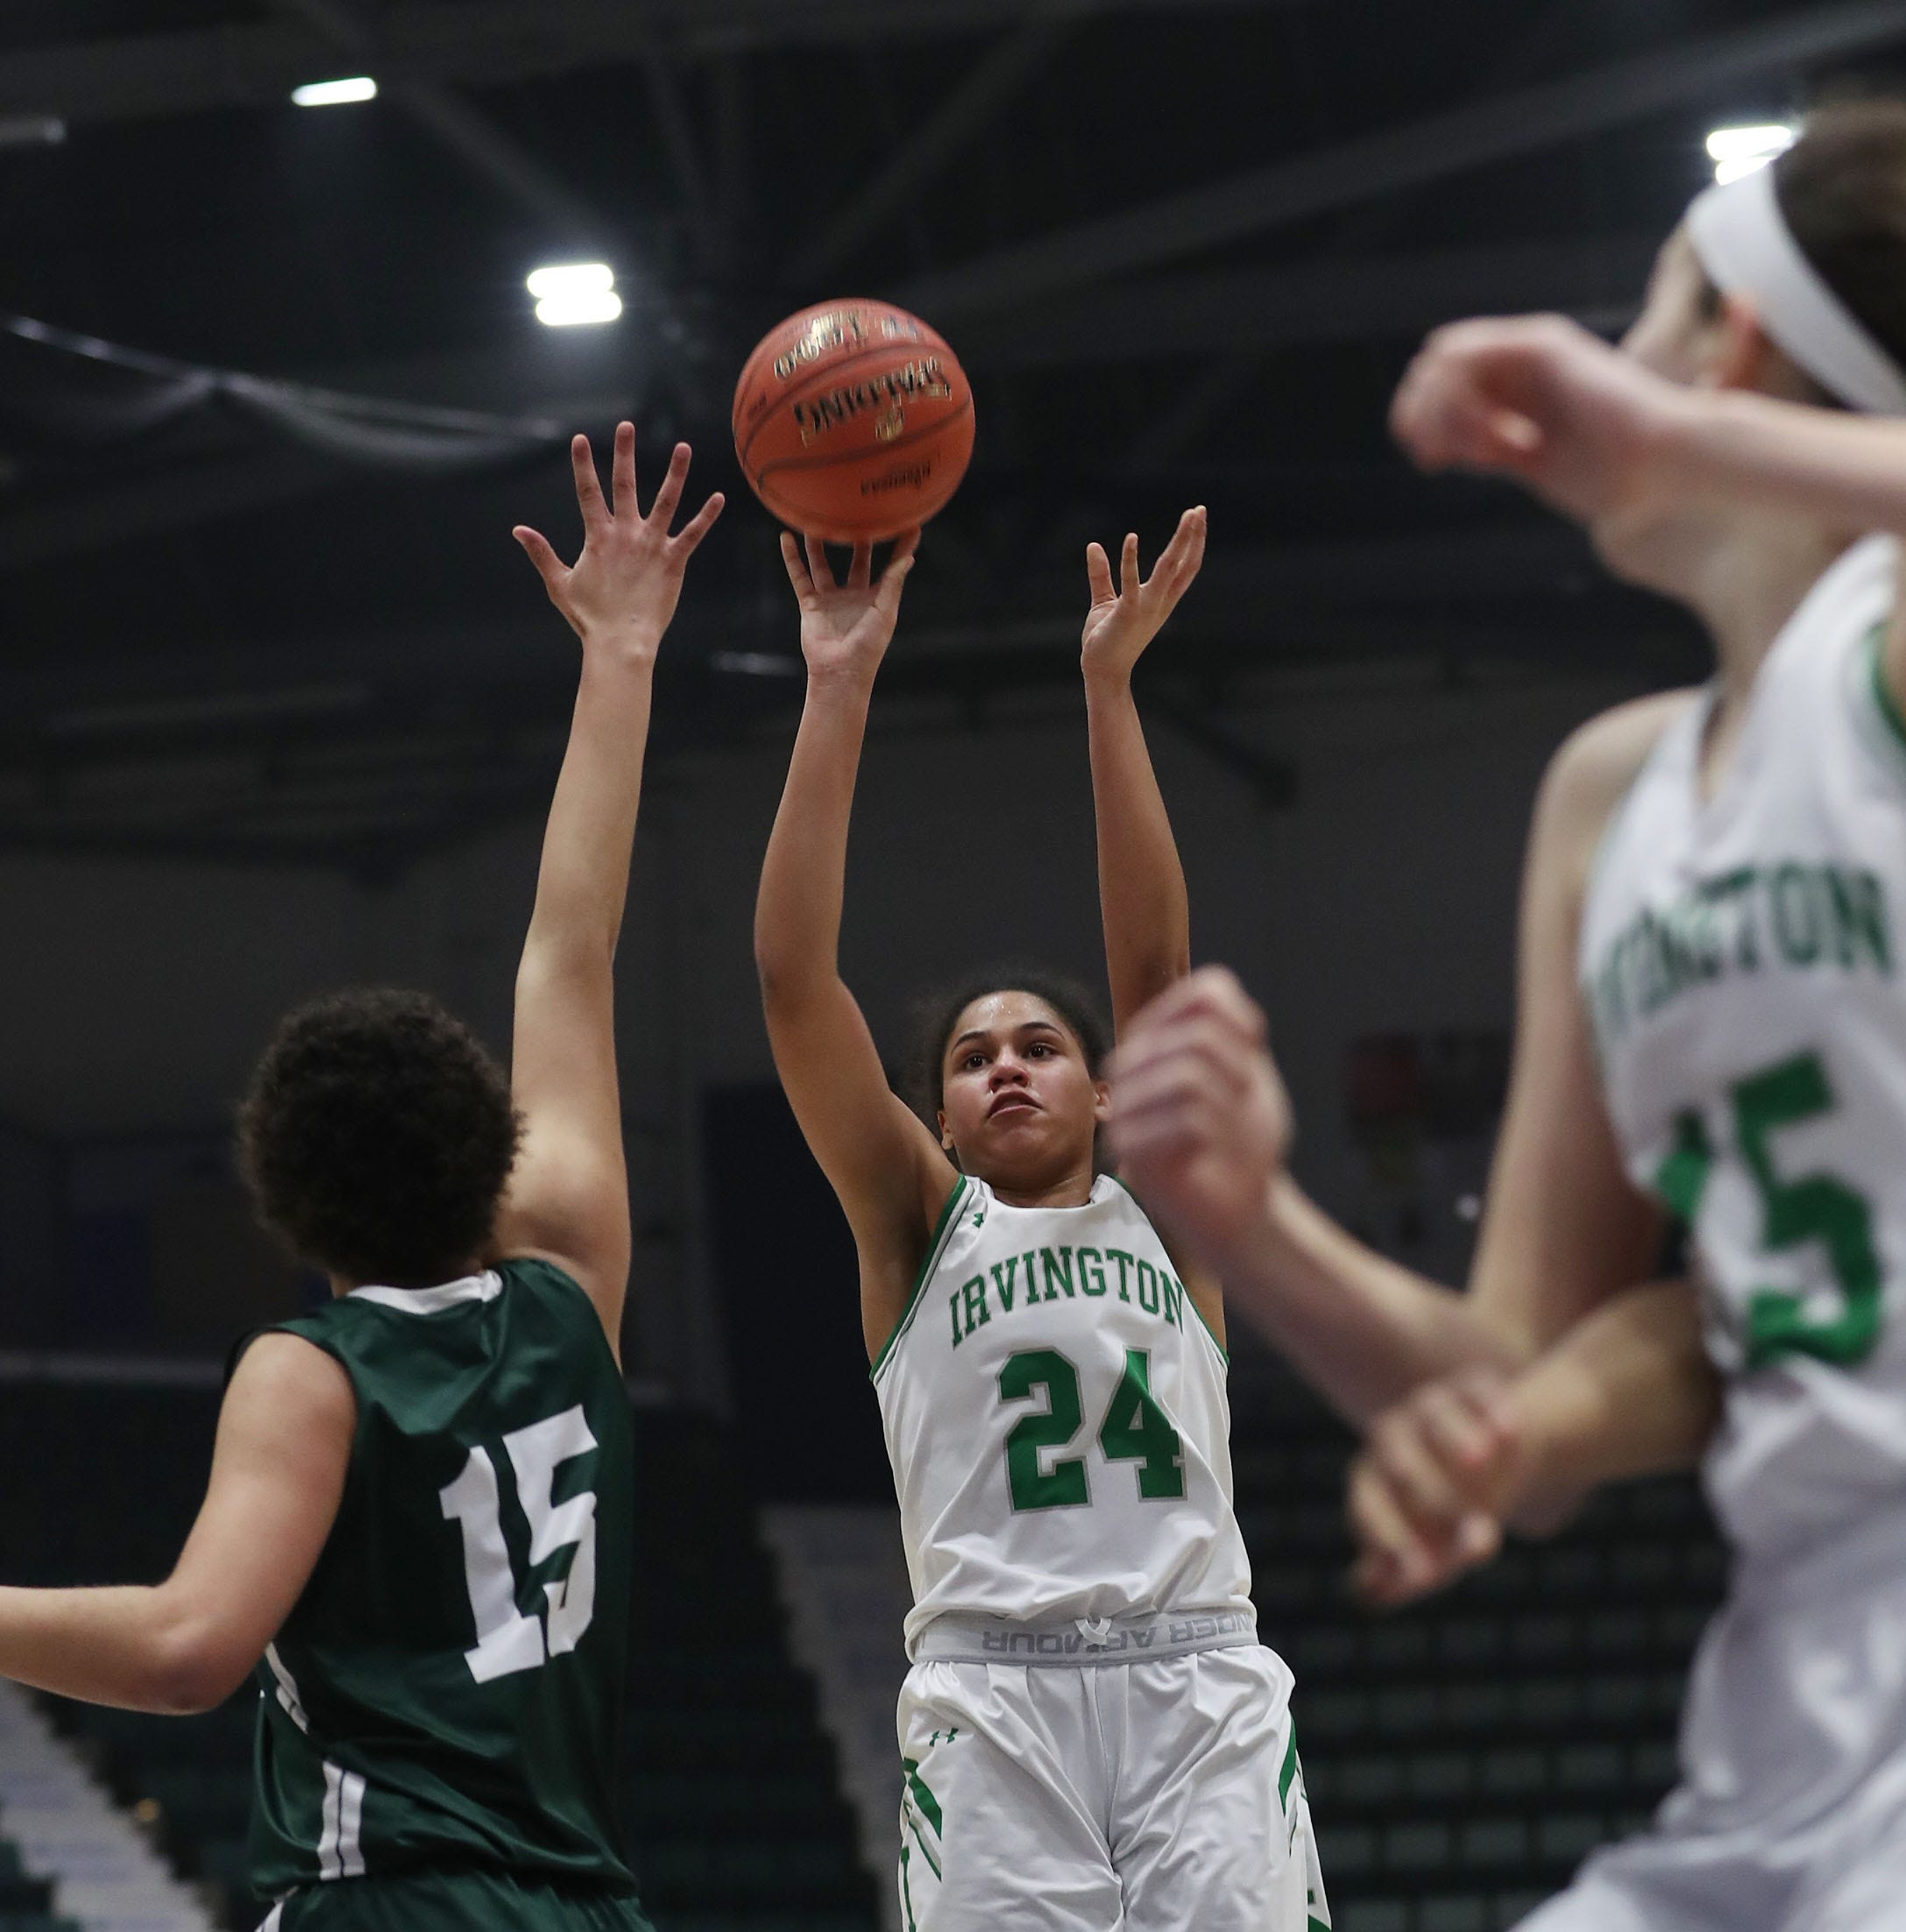 Girls basketball: Irvington wins Federation semifinal behind second-half surge